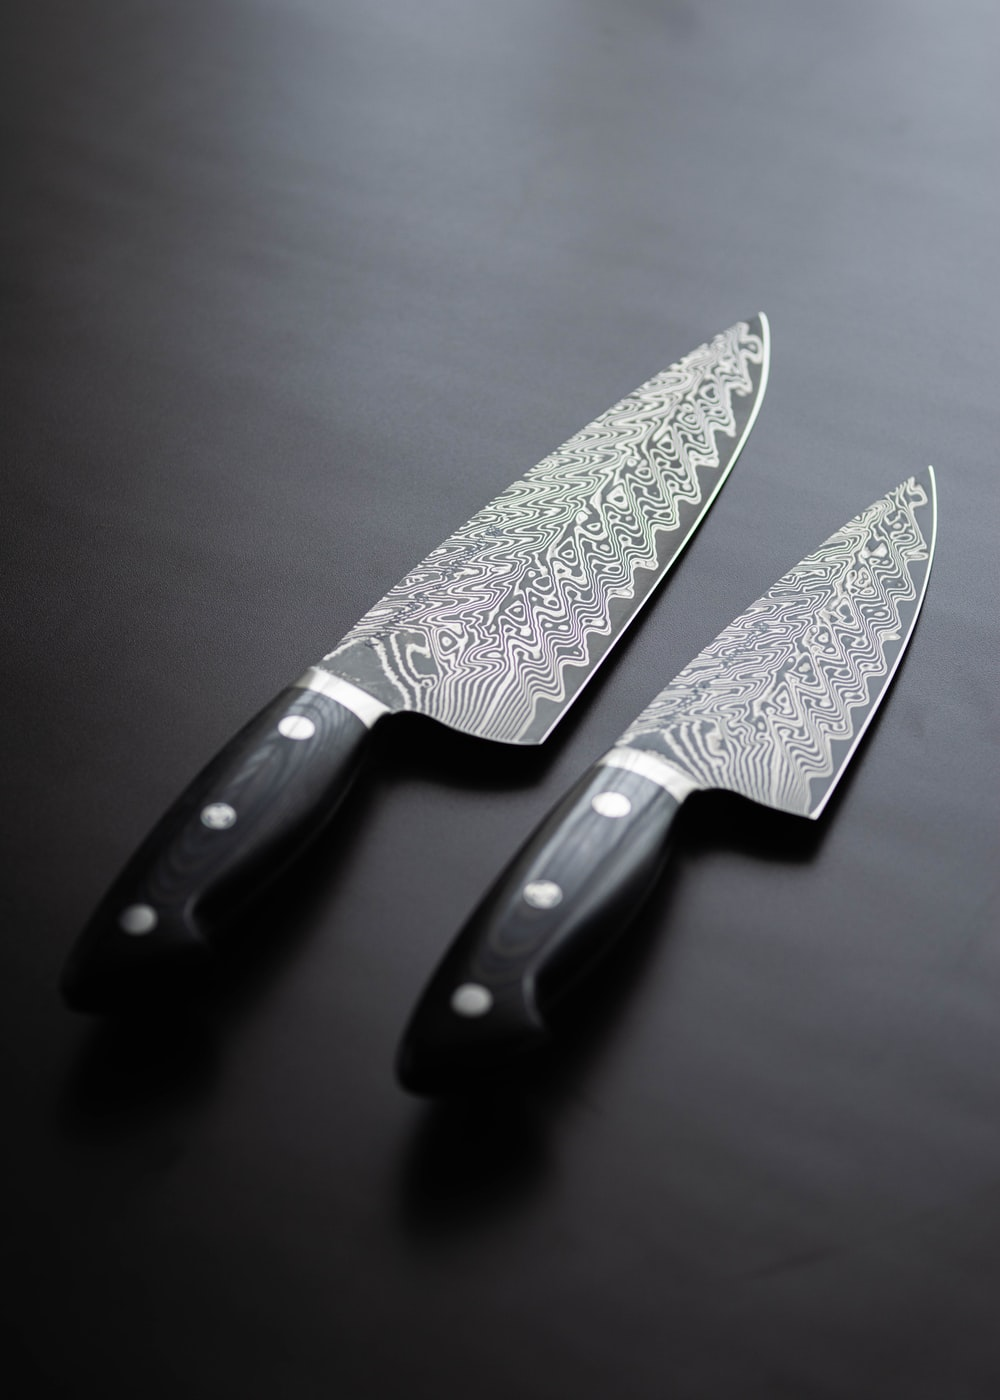 Pros and Cons of Ceramic Blade Knives